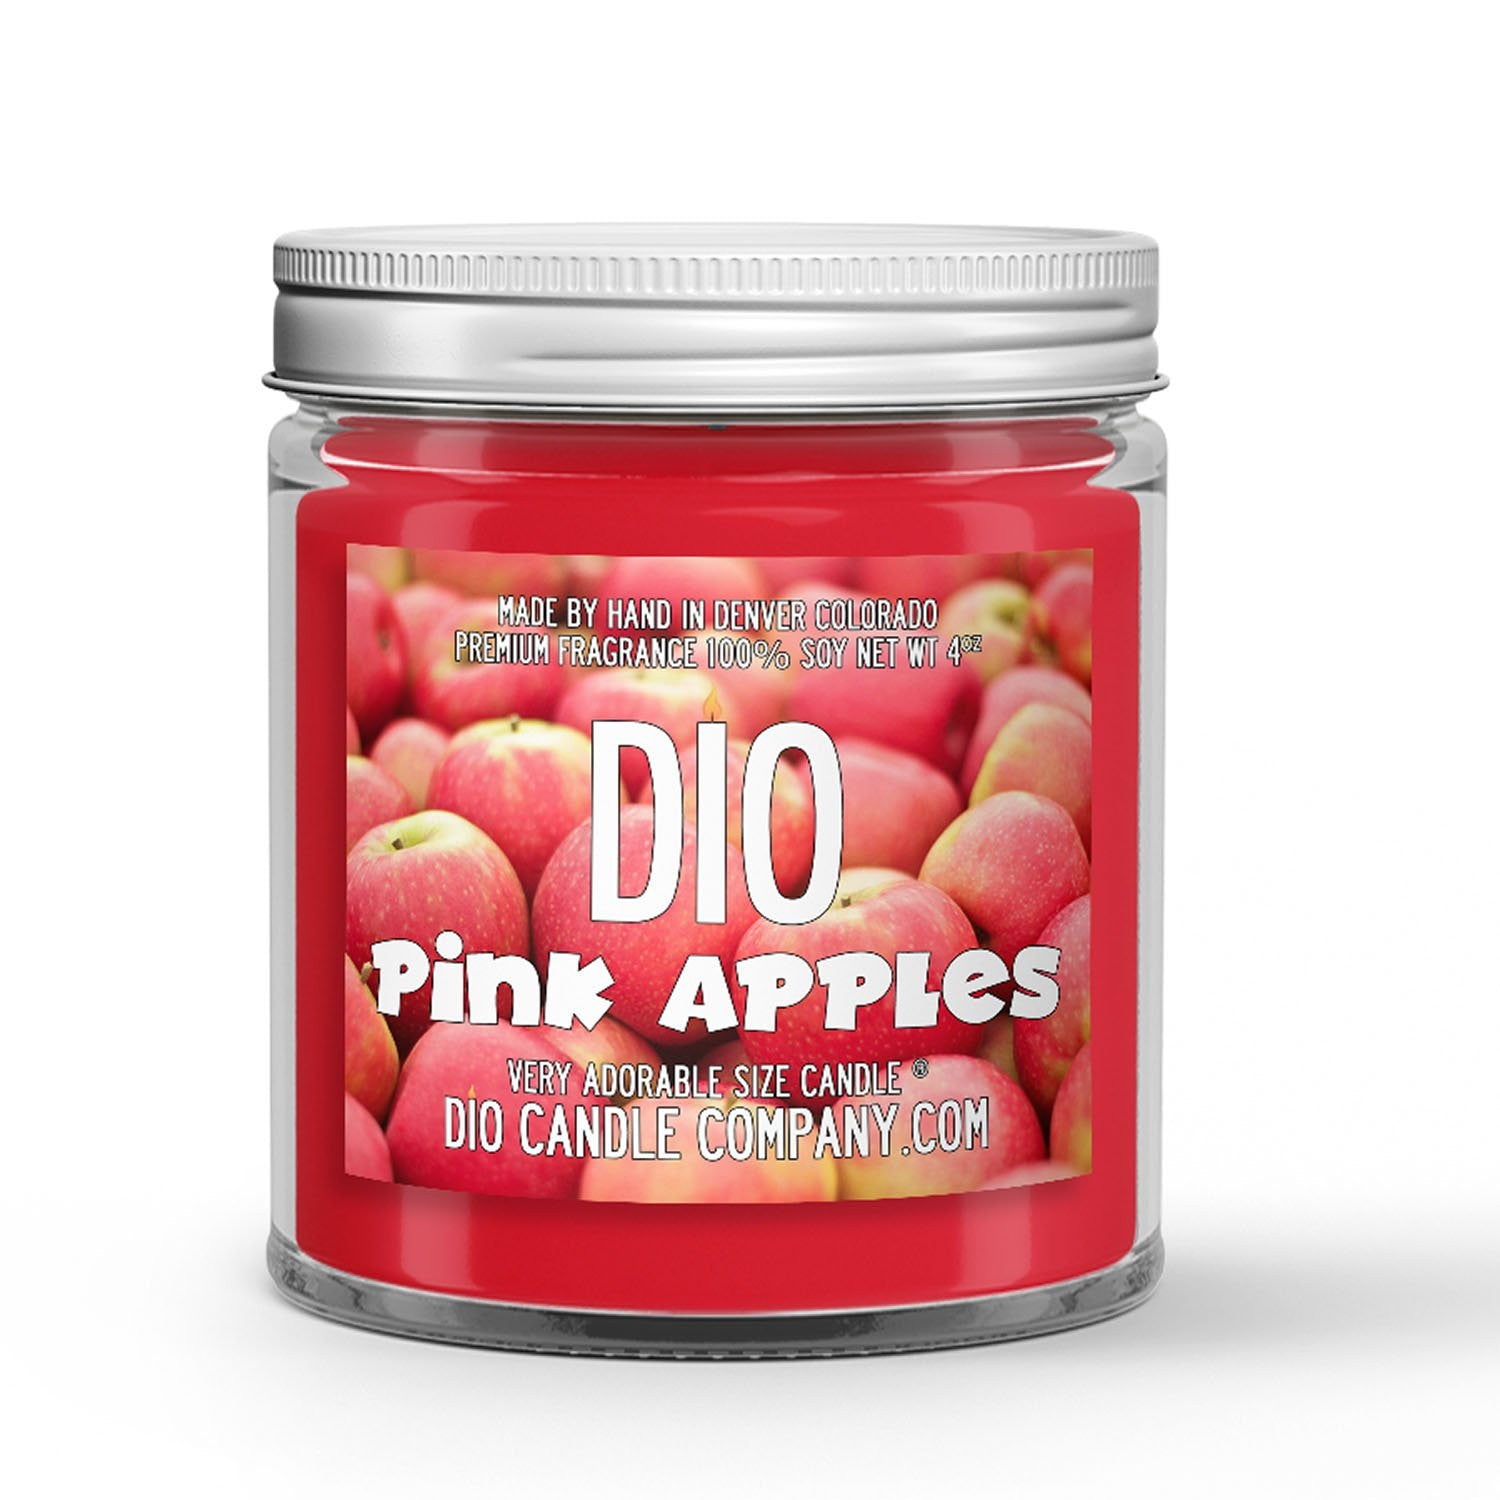 Pink Apples Candle - Tart Pink Apples - 4oz Very Adorable Size Candle® - Dio Candle Company